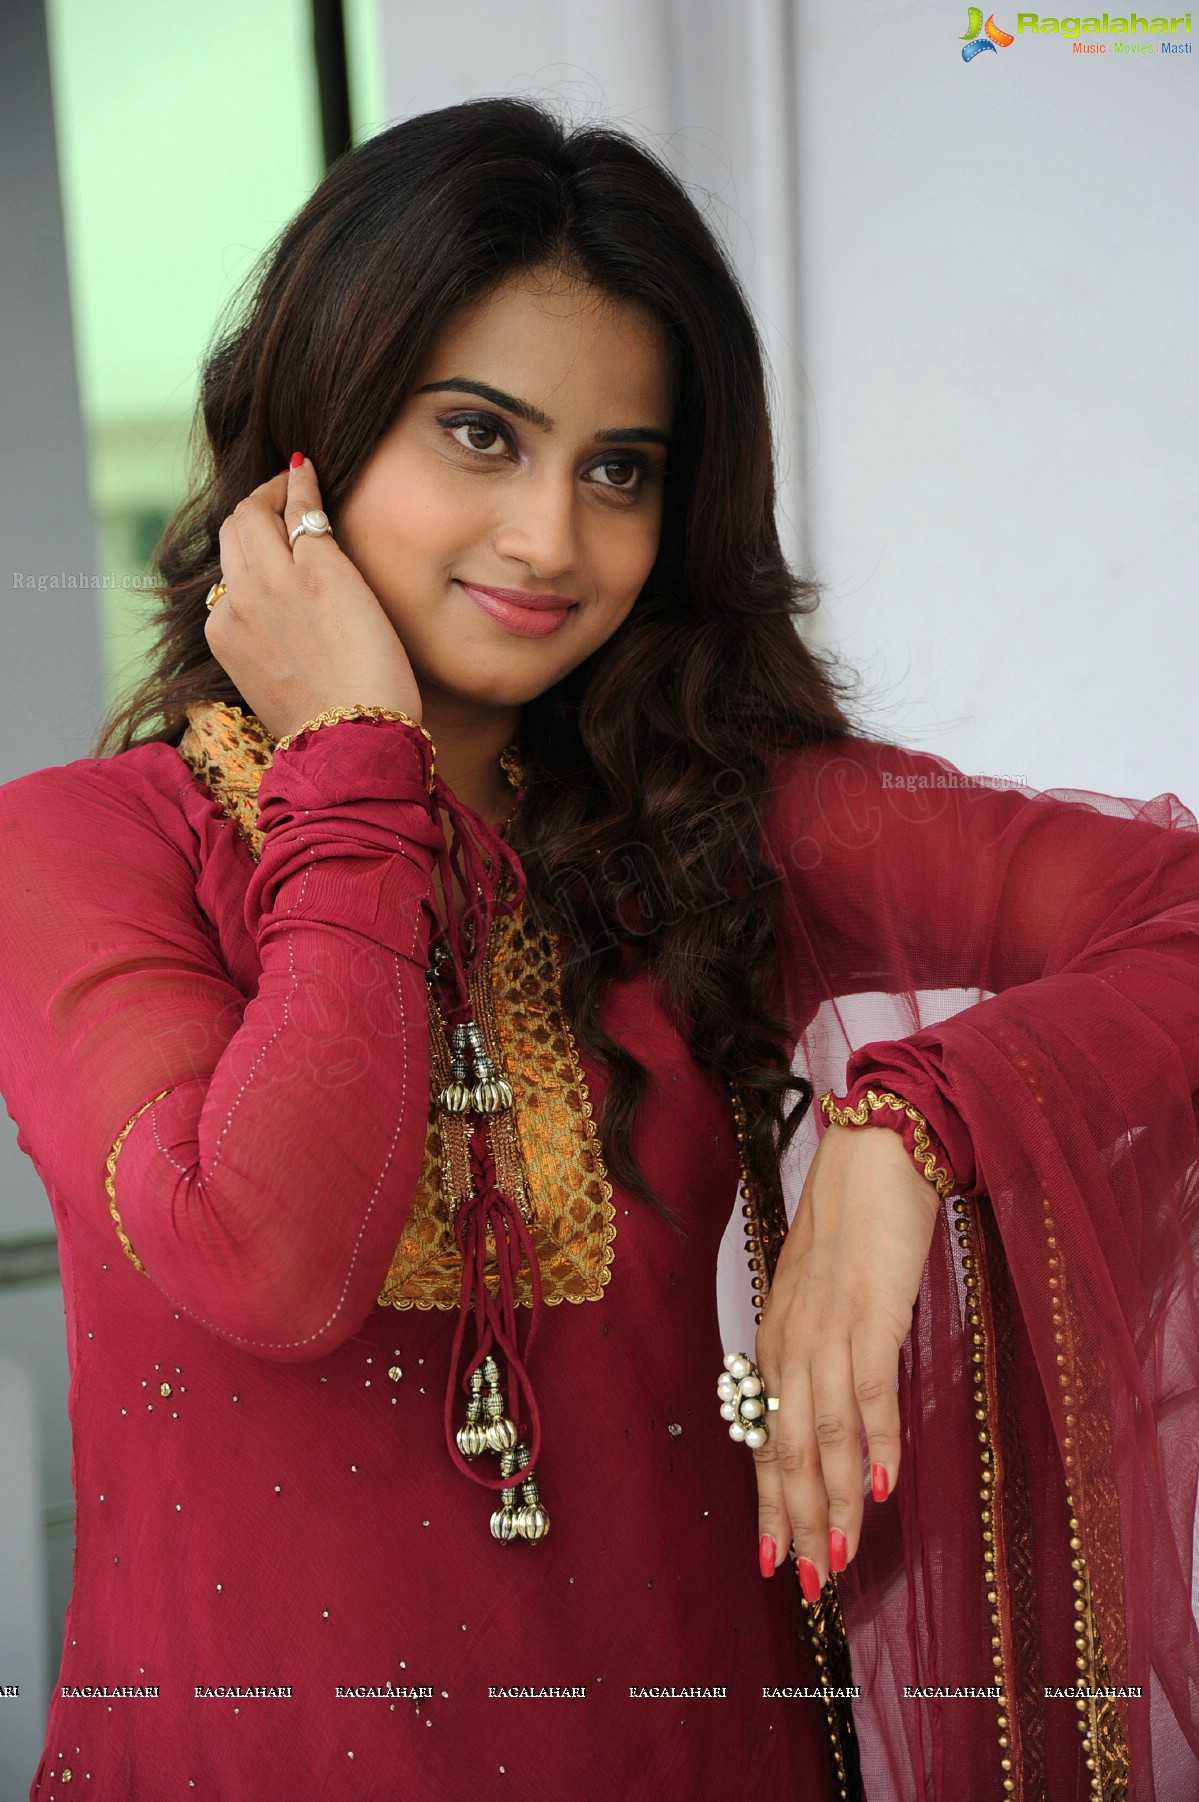 dimple chopade image 53 | telugu heroines gallery,photoshoot, wallpapers